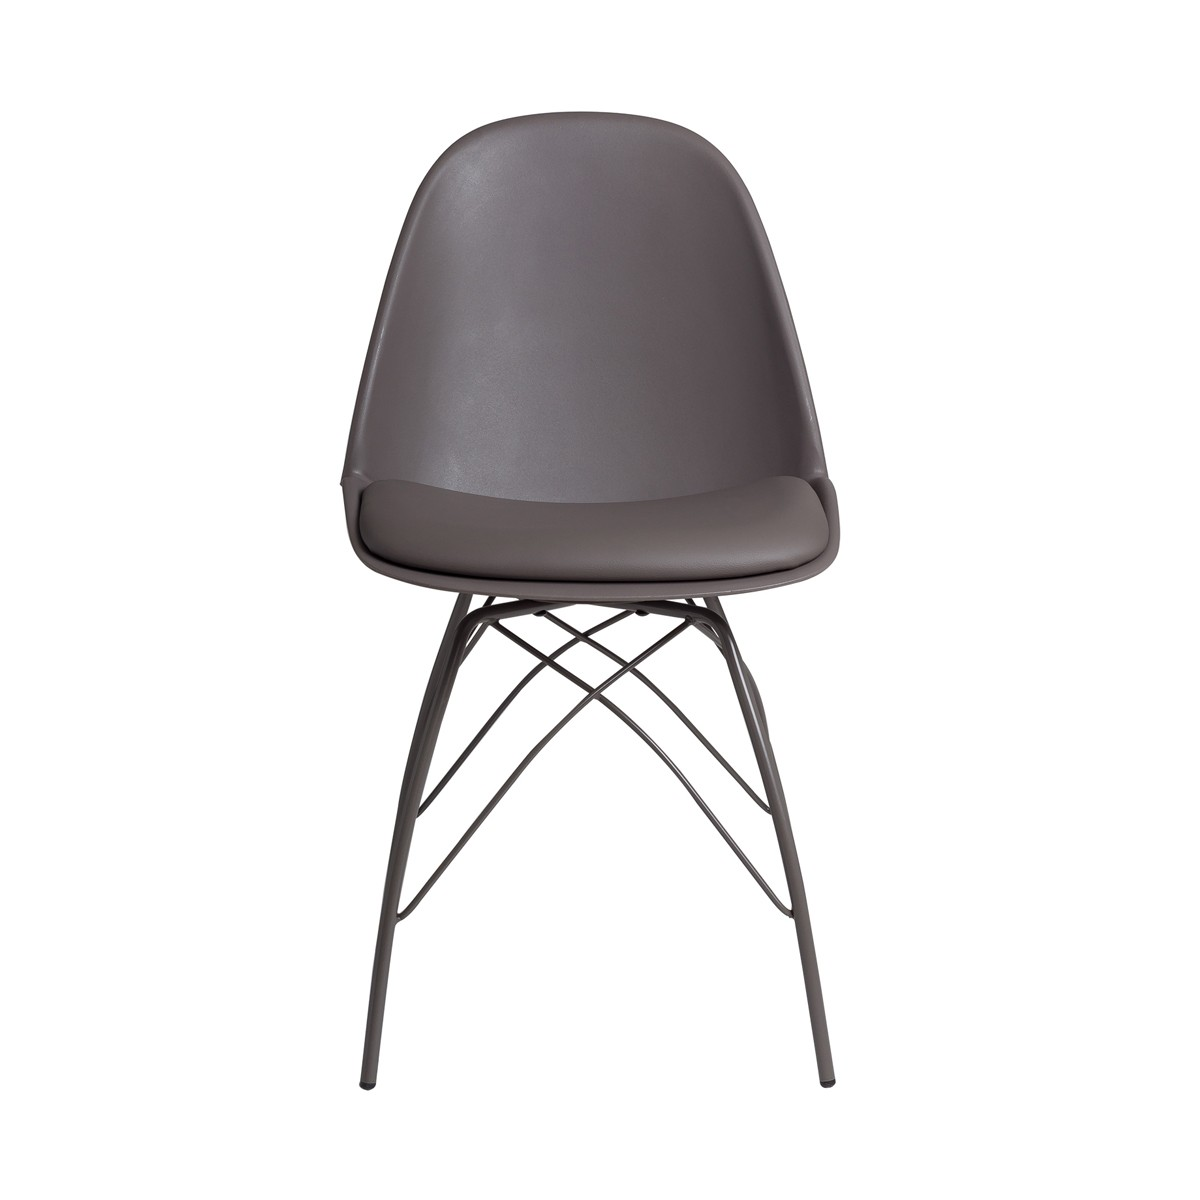 Adam  -  Dark Taupe Dining Chair with Powder Coated Metal Legs